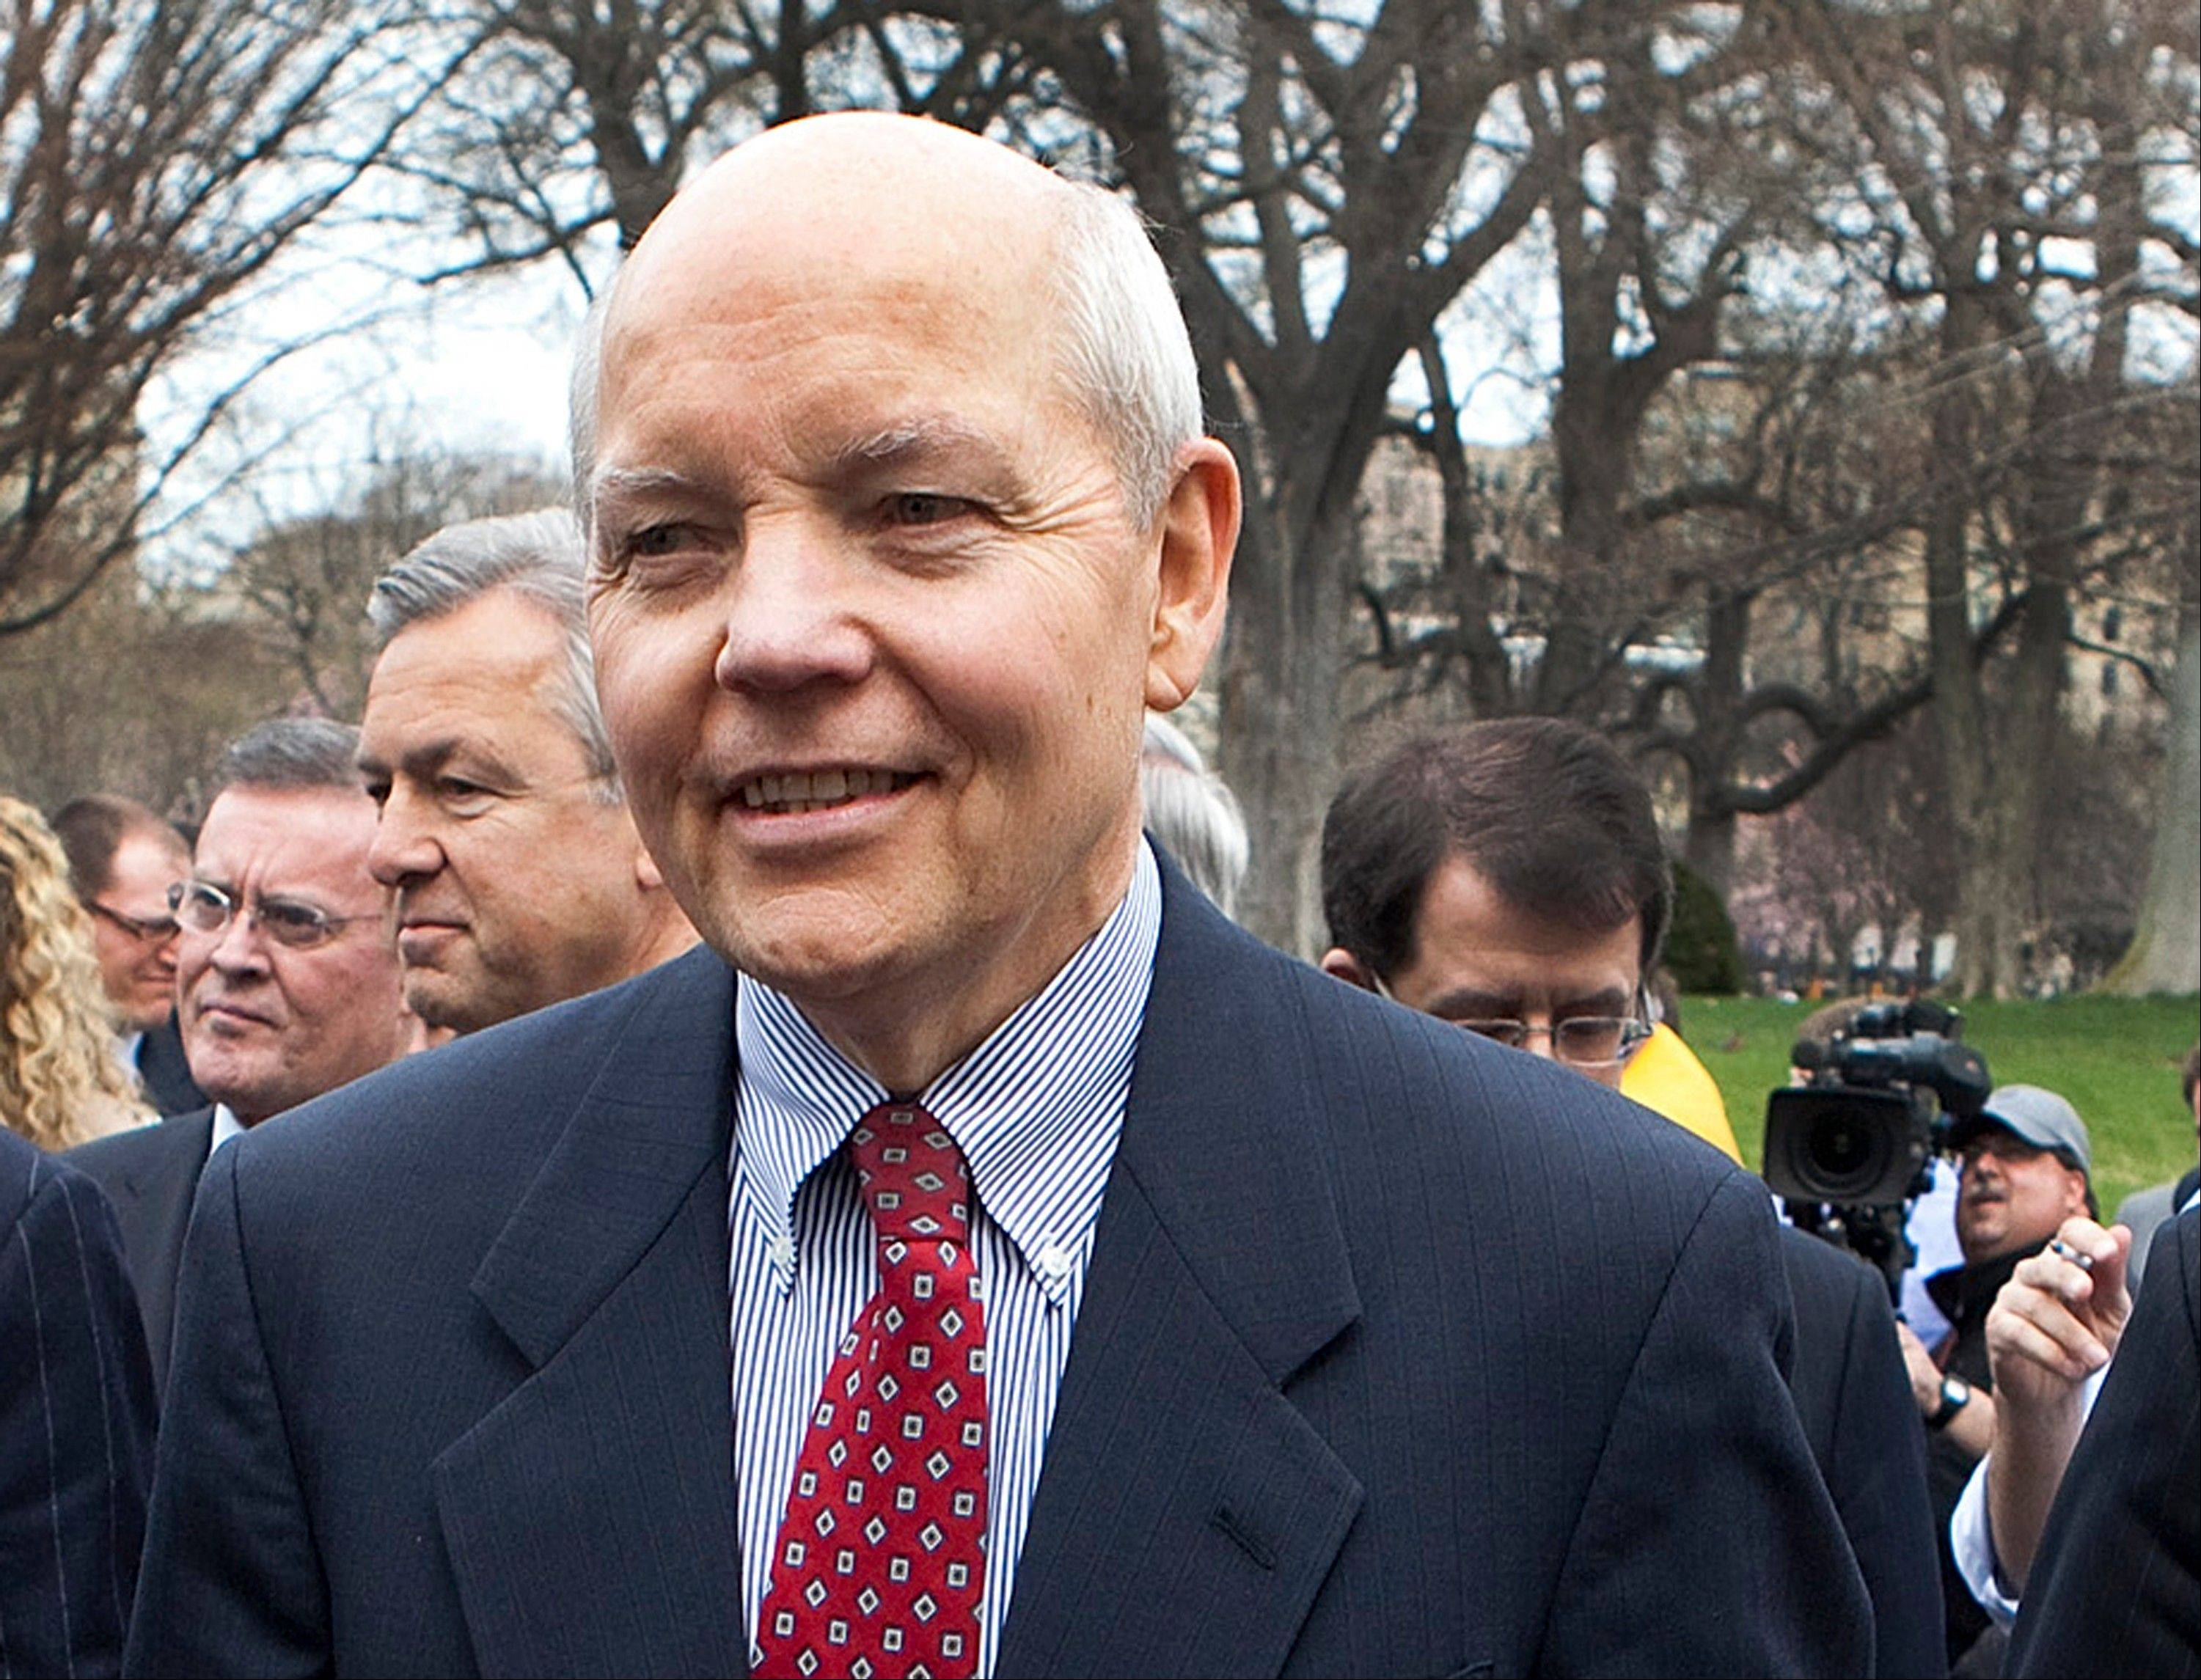 John Koskinen stands outside the White House in Washington. President Barack Obama has nominated Koskinen as Internal Revenue Service commissioner.